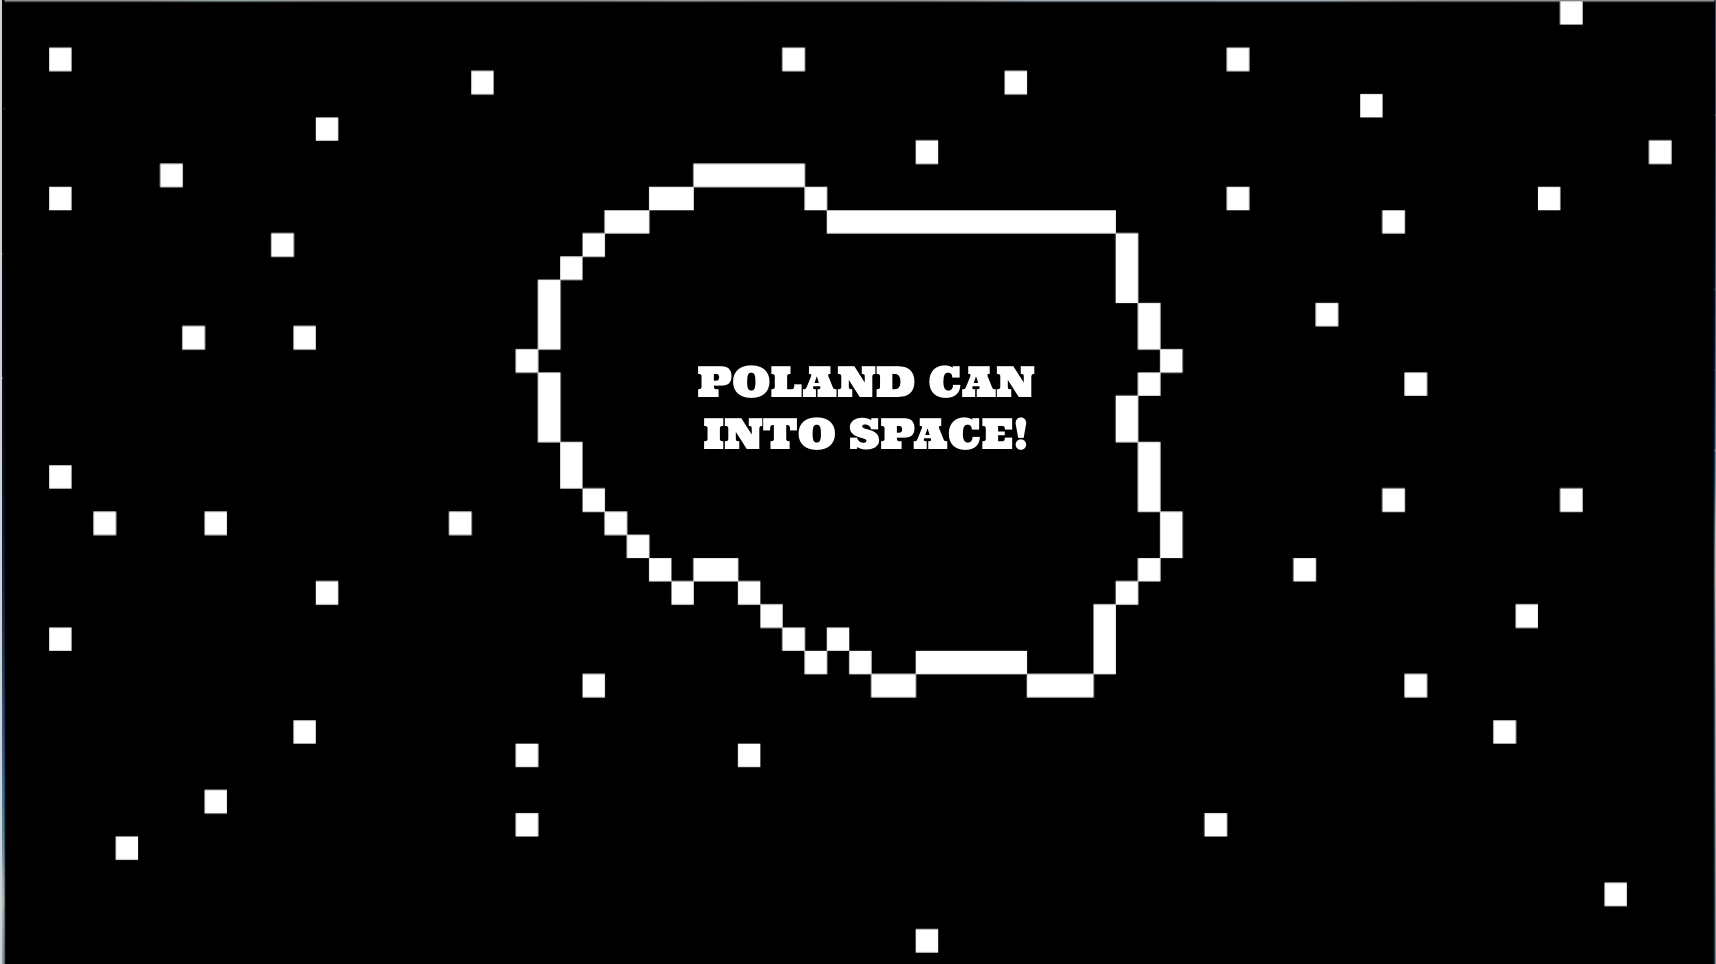 POLAND CAN INTO SPACE!.png